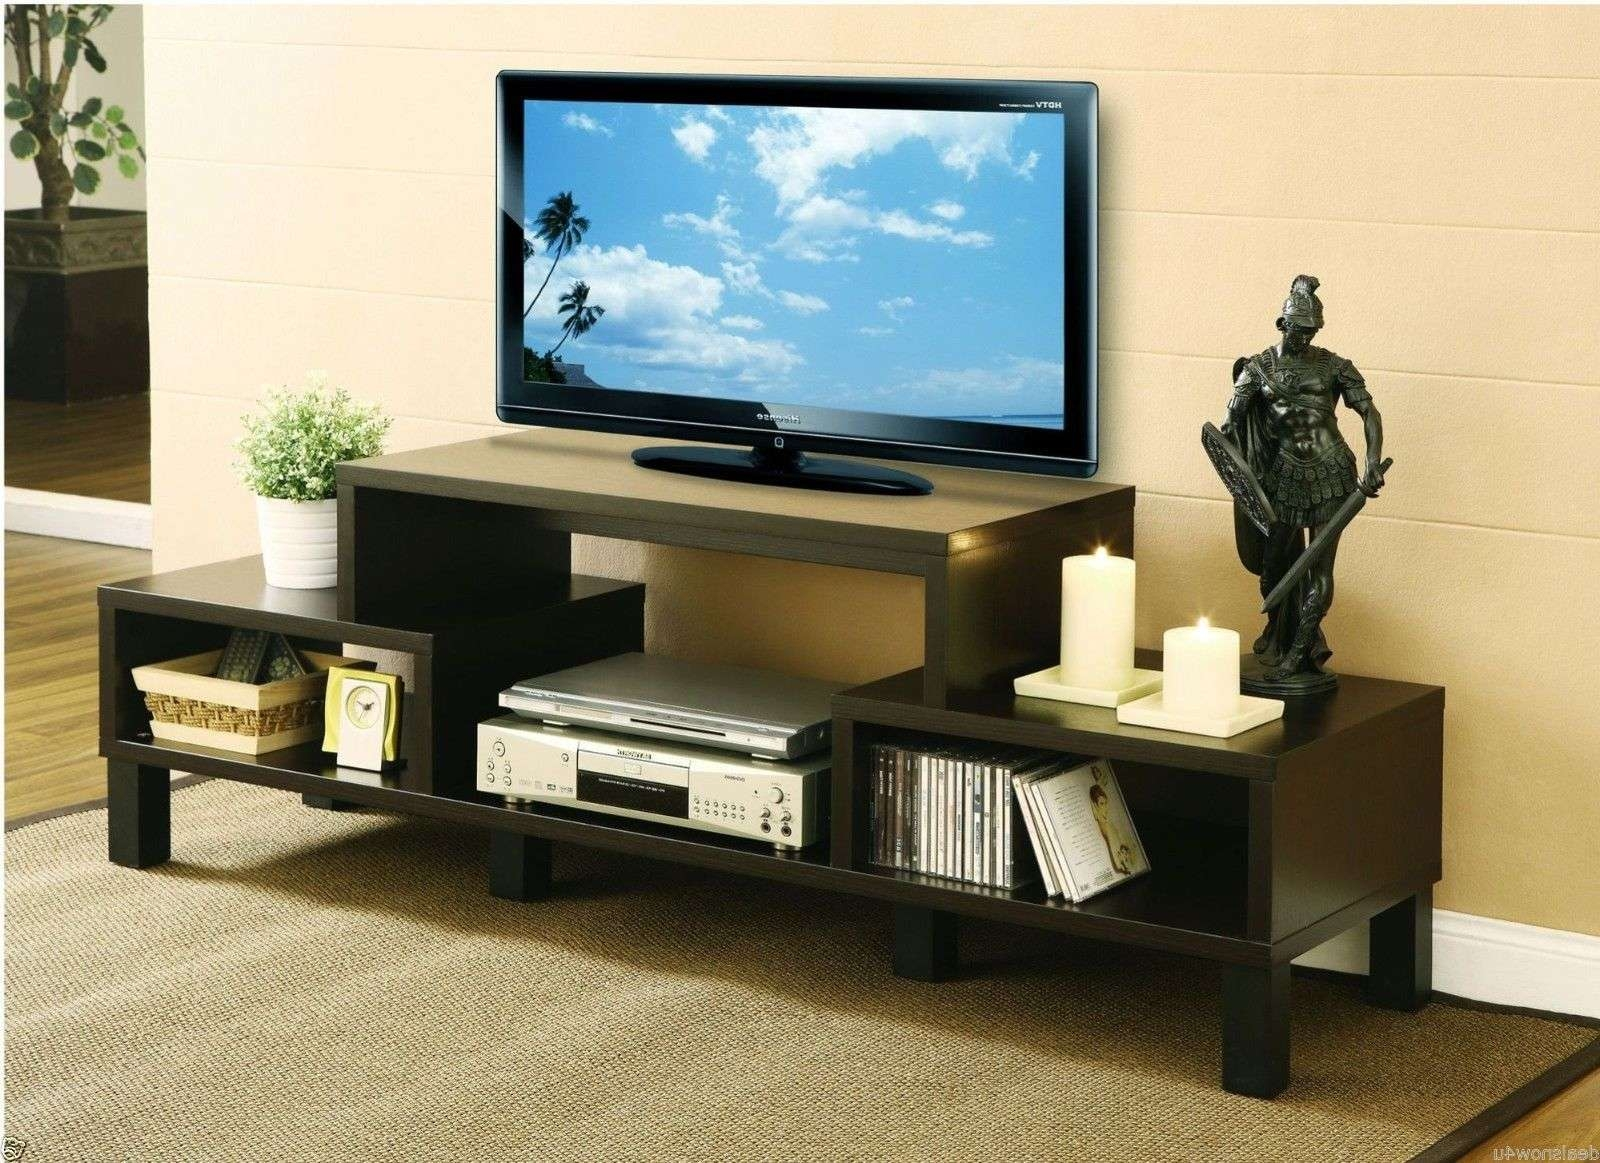 Classy White Painted Pine Wood Tv Stand With Storage Drawers Of In Classy Tv Stands (View 14 of 20)